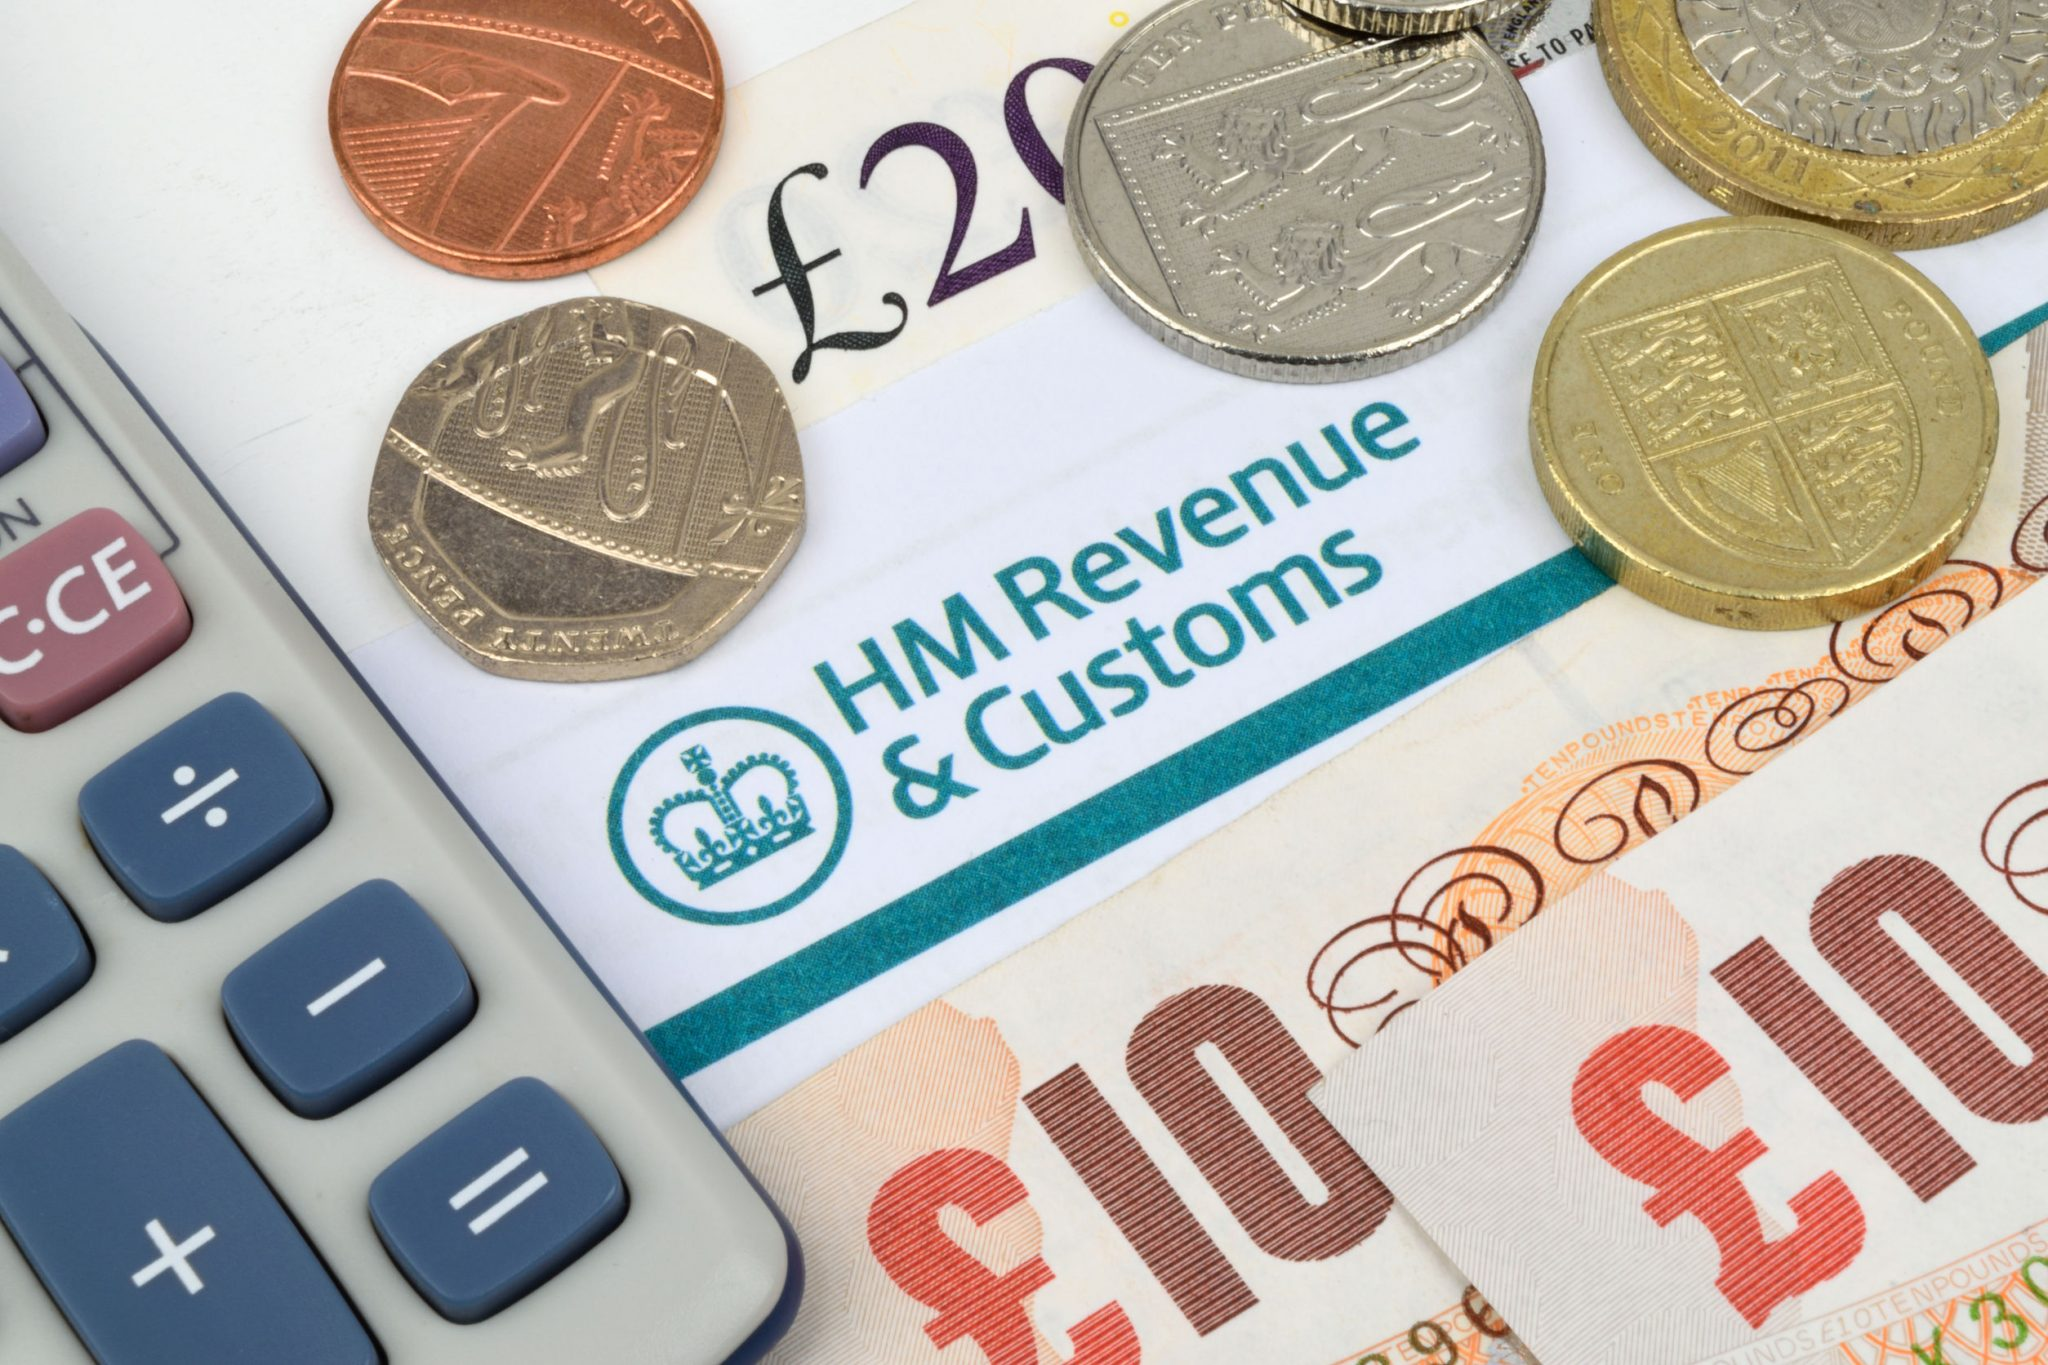 HMRC VAT Customs Excise Tax Defence Solicitors Manchester London